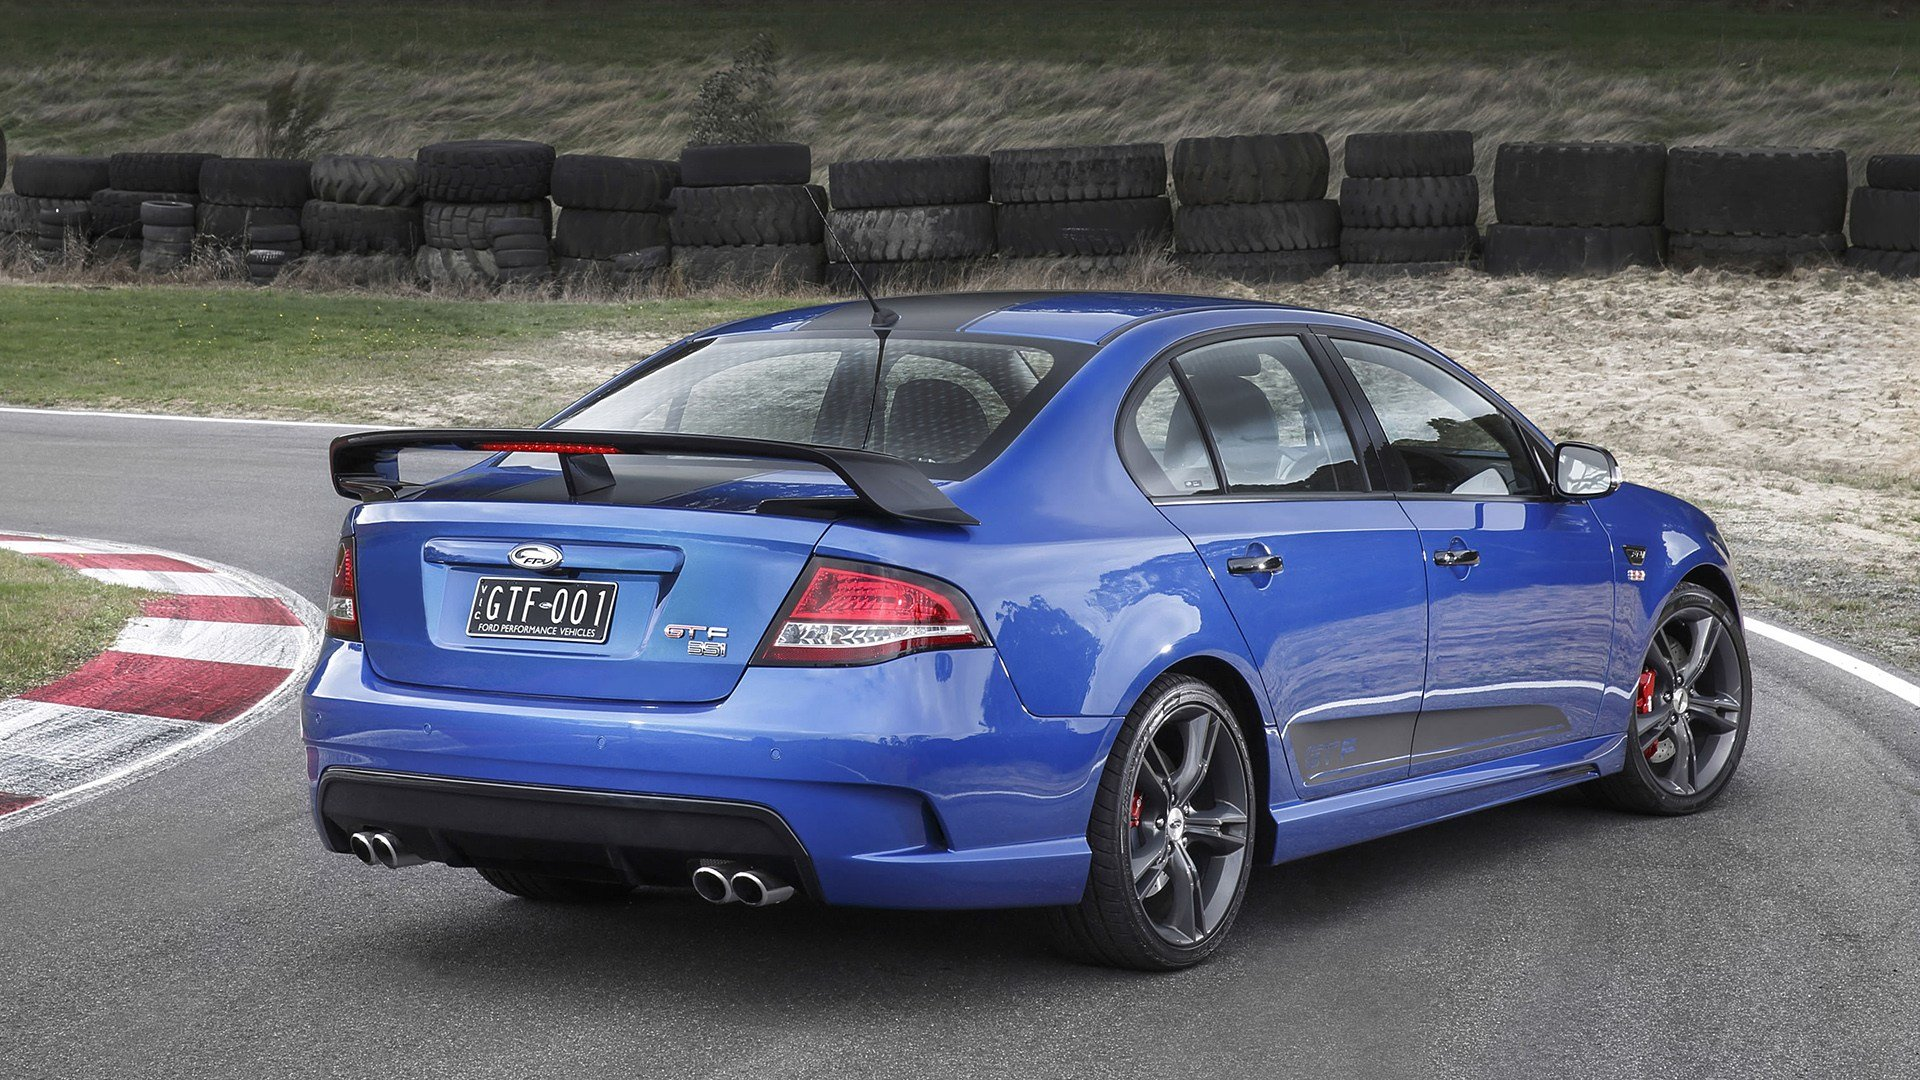 New 2014 Ford Fpv Gt F 351 Wallpapers Hd Images Wsupercars On This Month